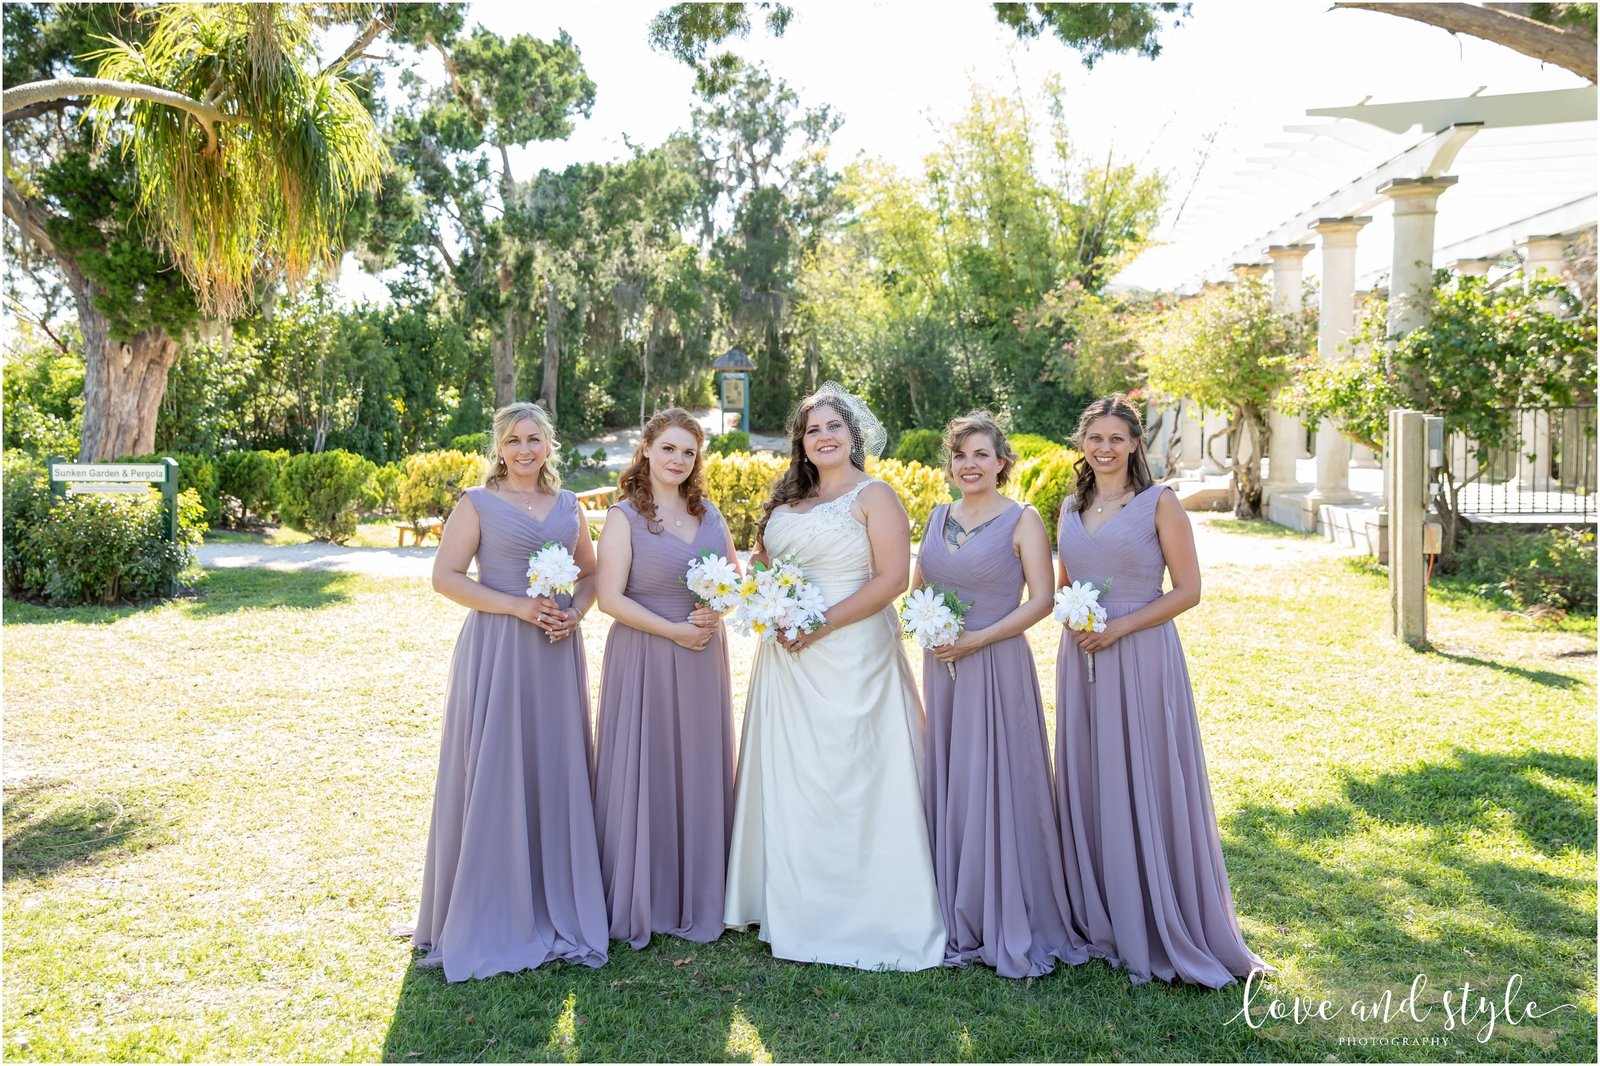 A bride and her bridesmaids at The Historic Spanish Point in Sarasota